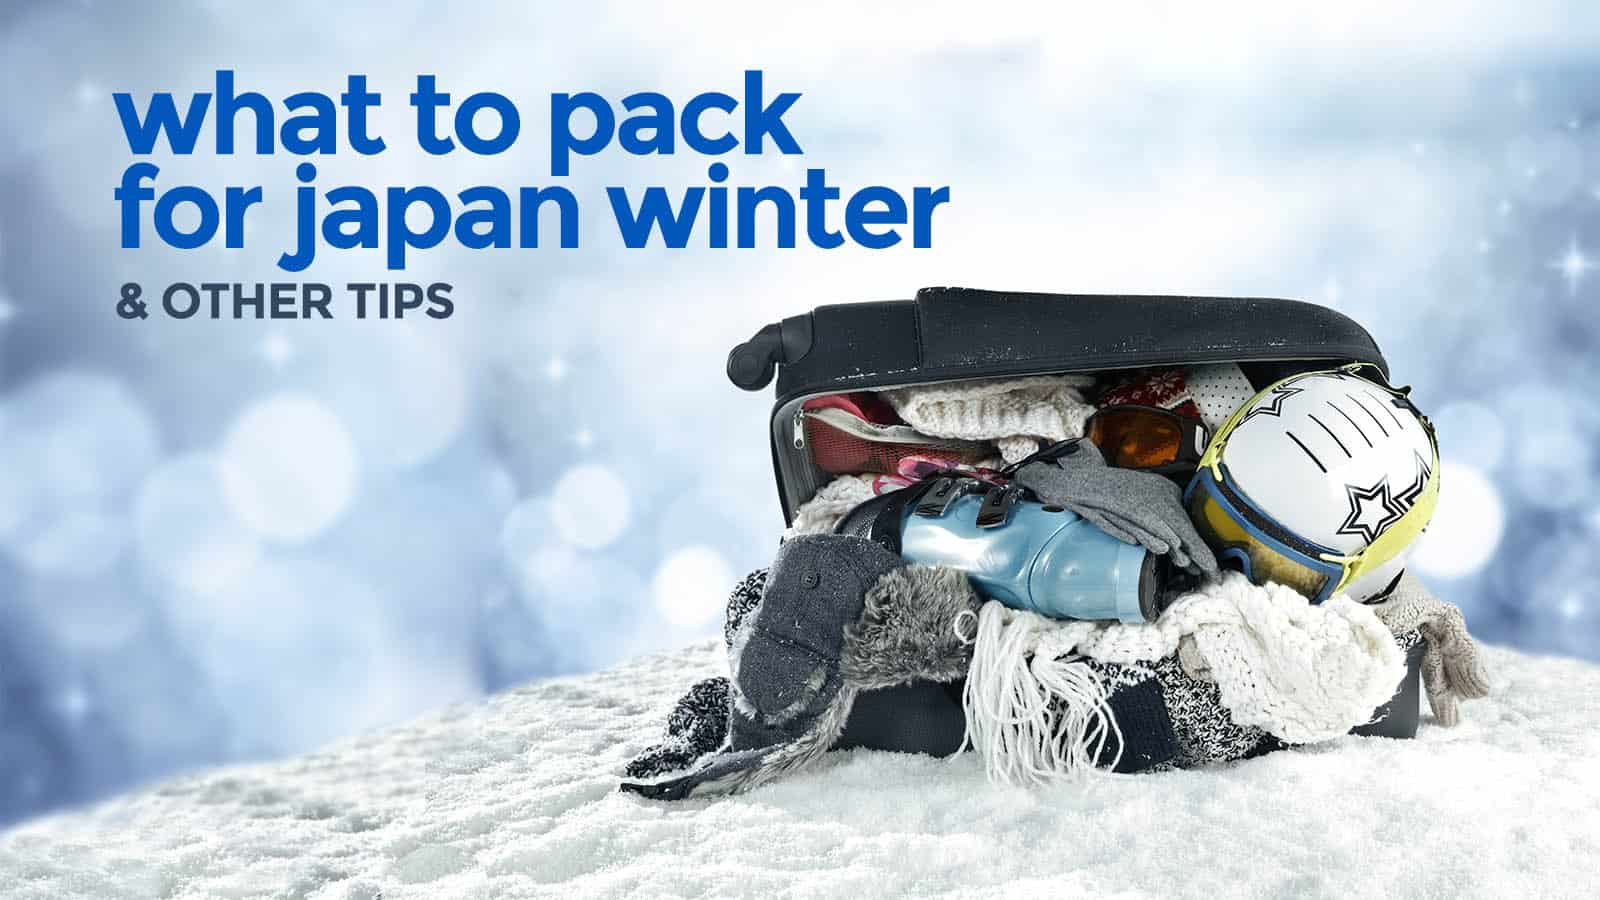 12 JAPAN WINTER TRAVEL TIPS: What to Pack, Where to Buy